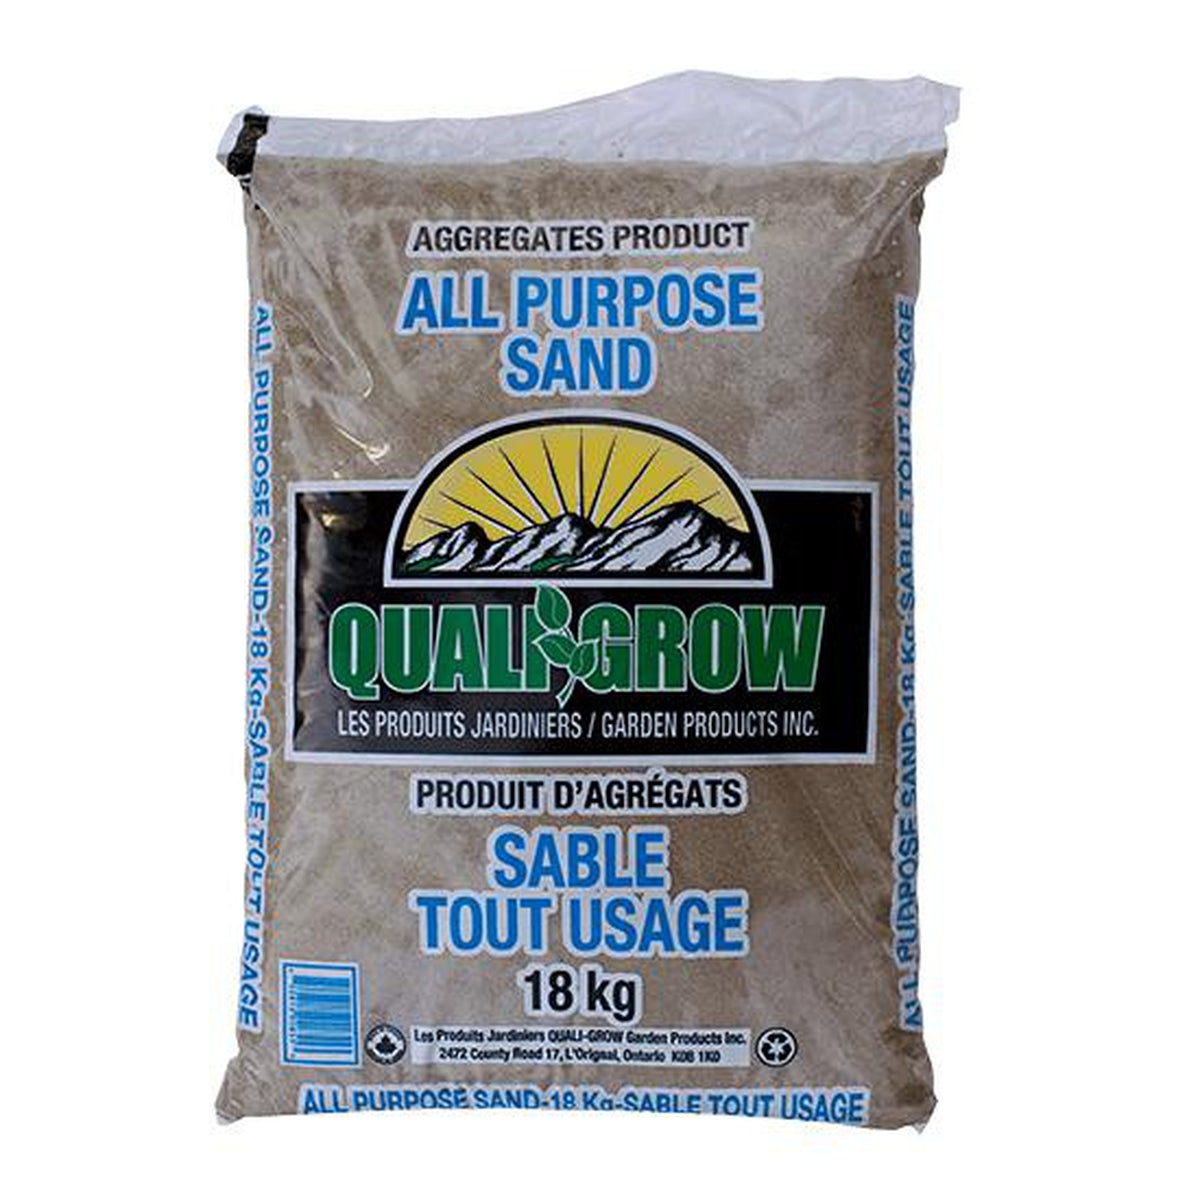 All Purpose Sand (18 kg) (4670995202153)